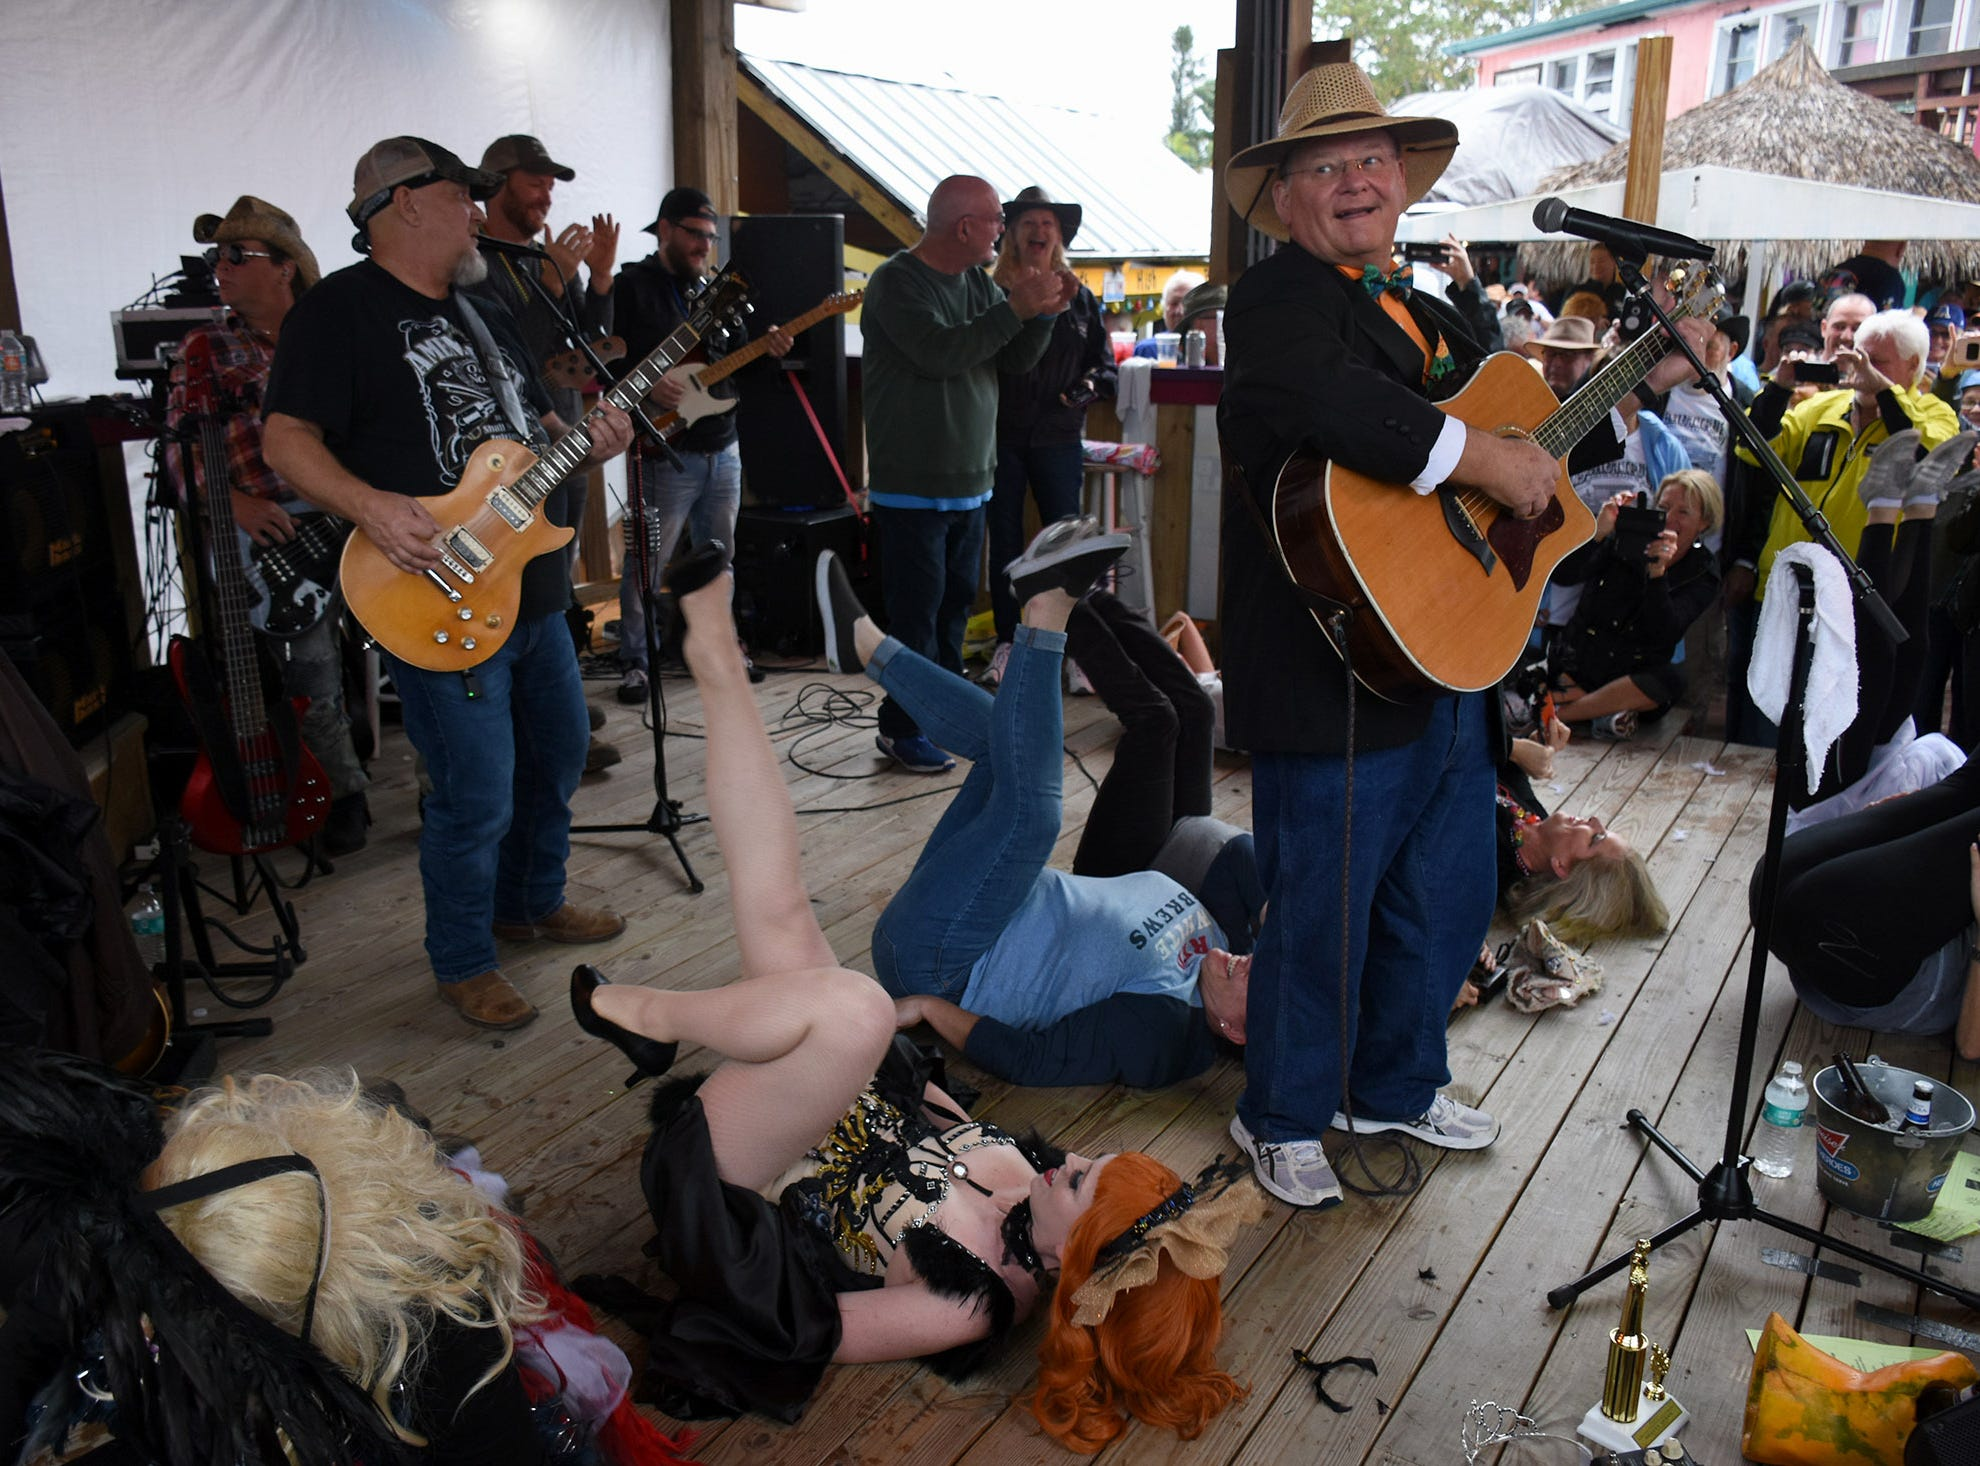 Emcee Jeff Hilt calls the Buzzard Lope tune. Stan's Idle Hour restaurant held The 35th annual Mullet Festival over the weekend, a rain and beer-soaked celebration.